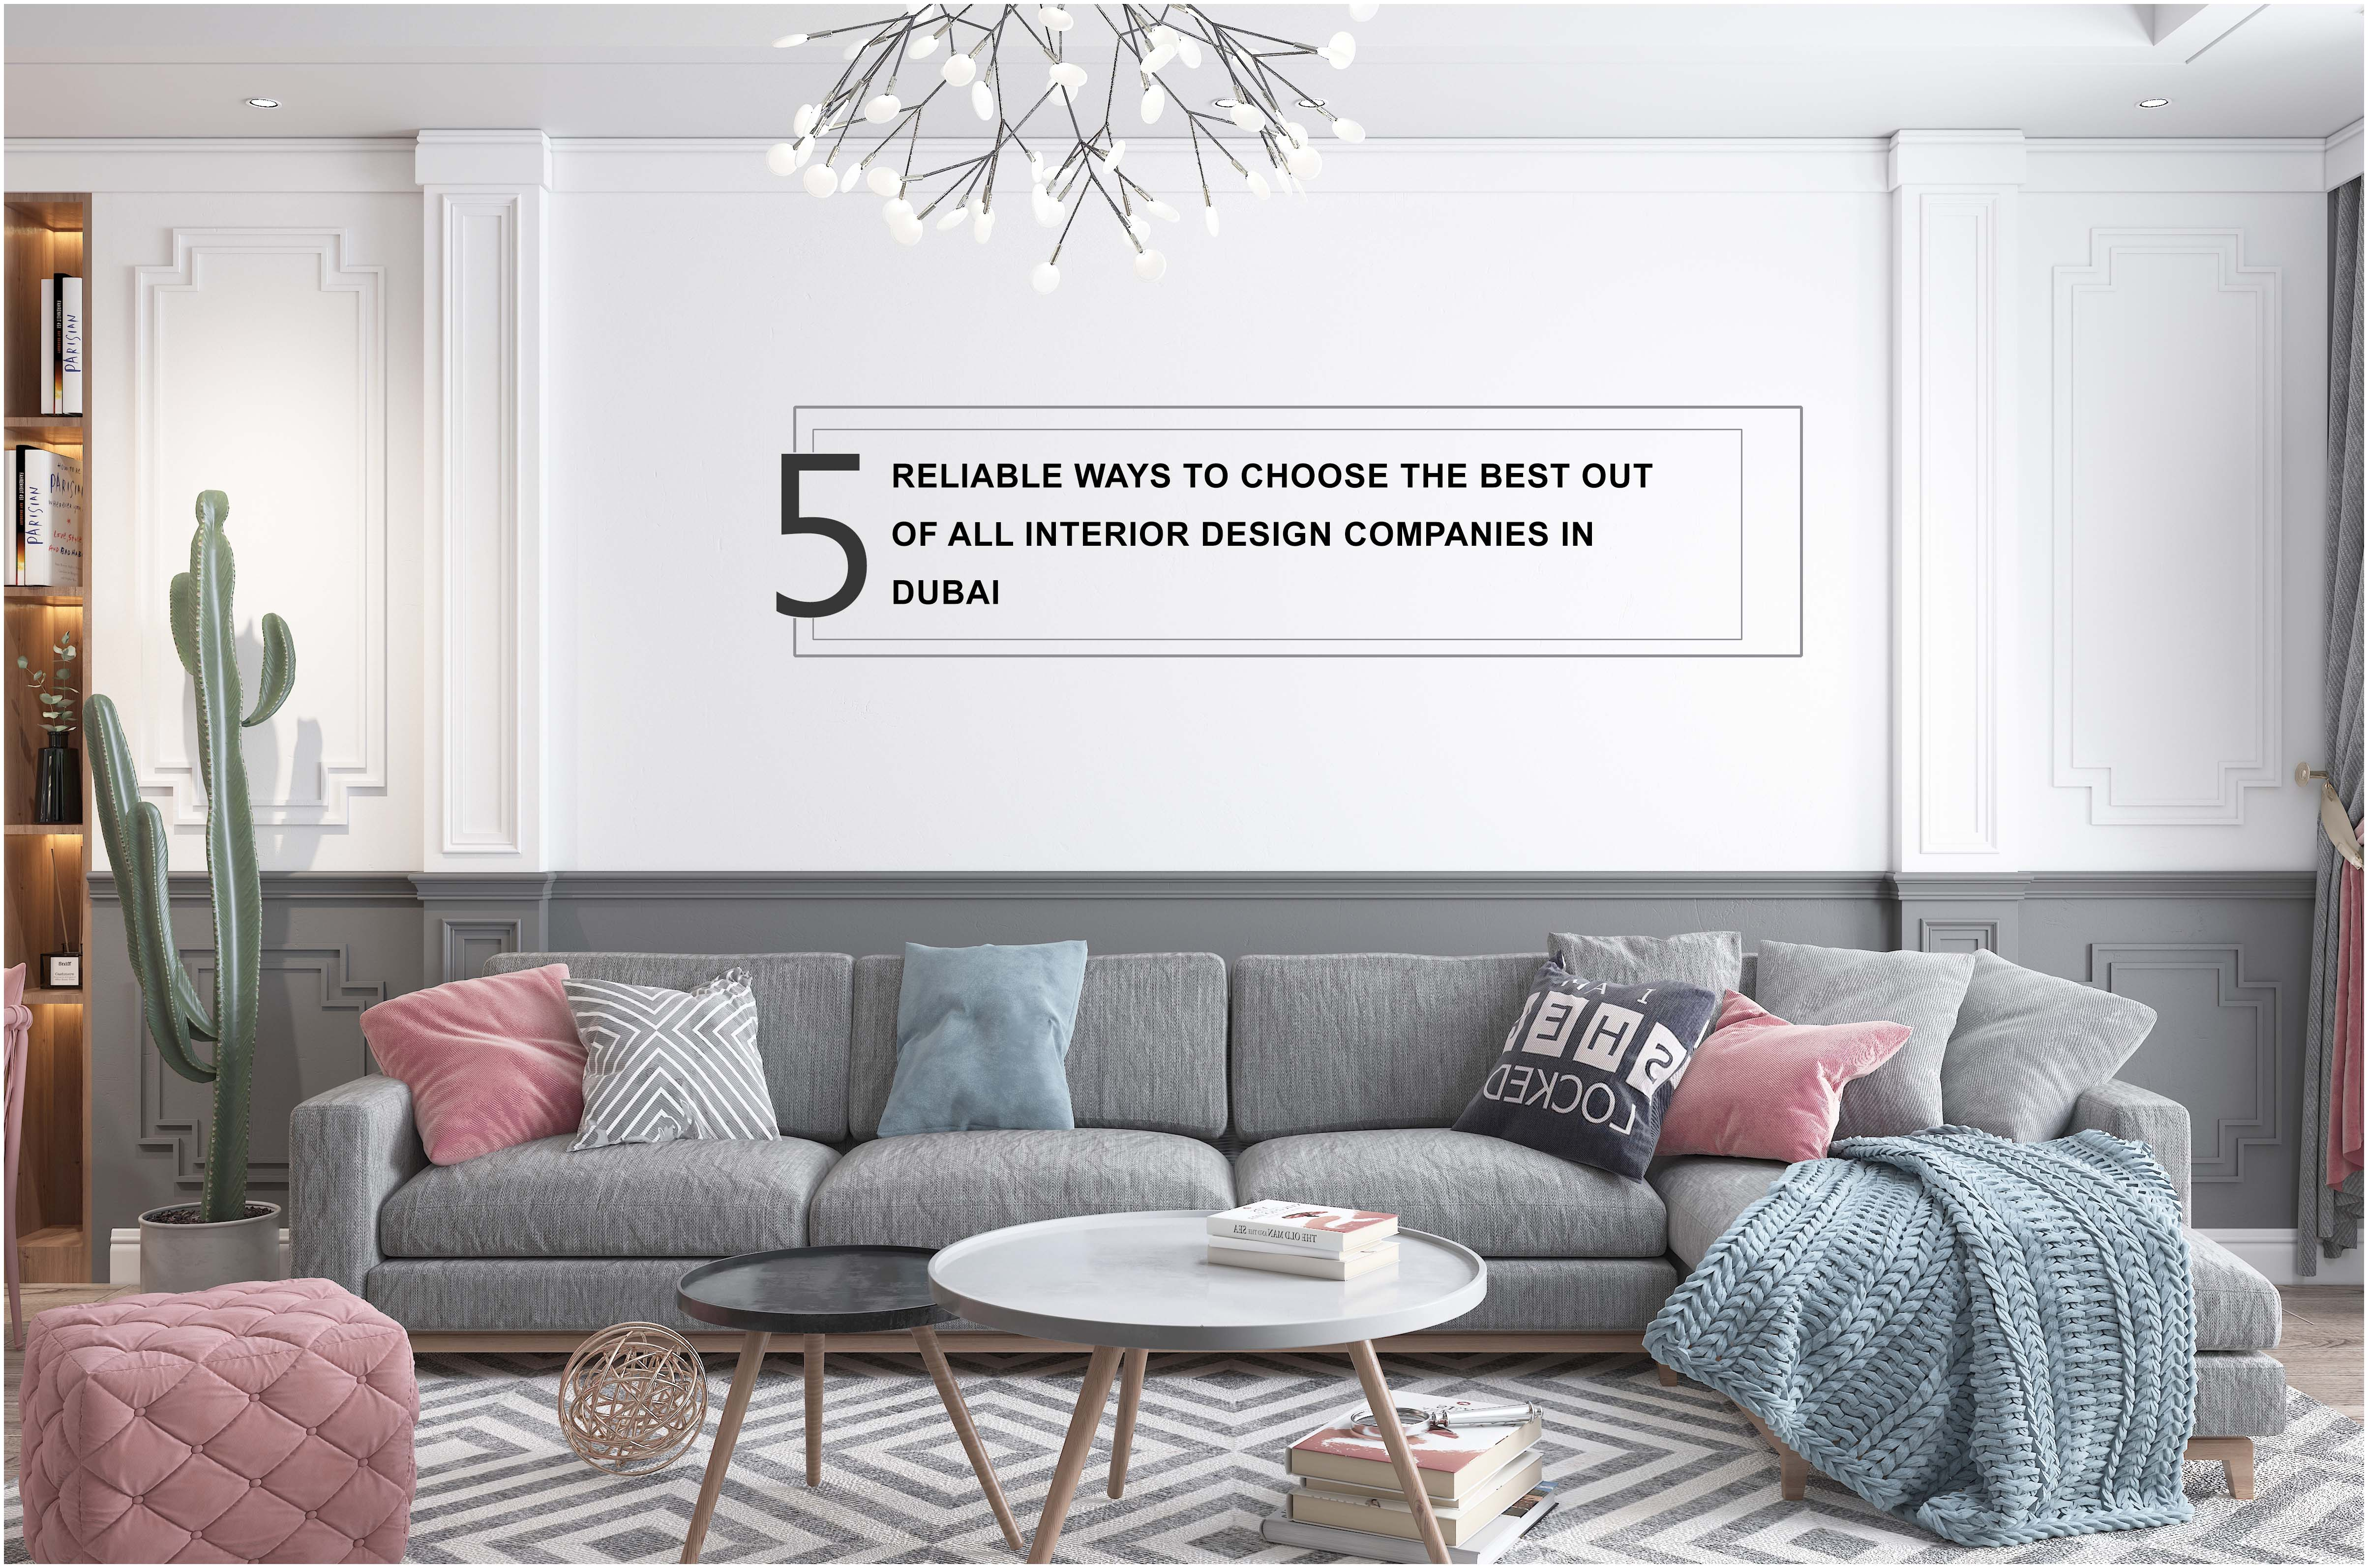 5 RELIABLE WAYS TO CHOOSE THE BEST OUT OF ALL INTERIOR DESIGN COMPANIES IN DUBAI